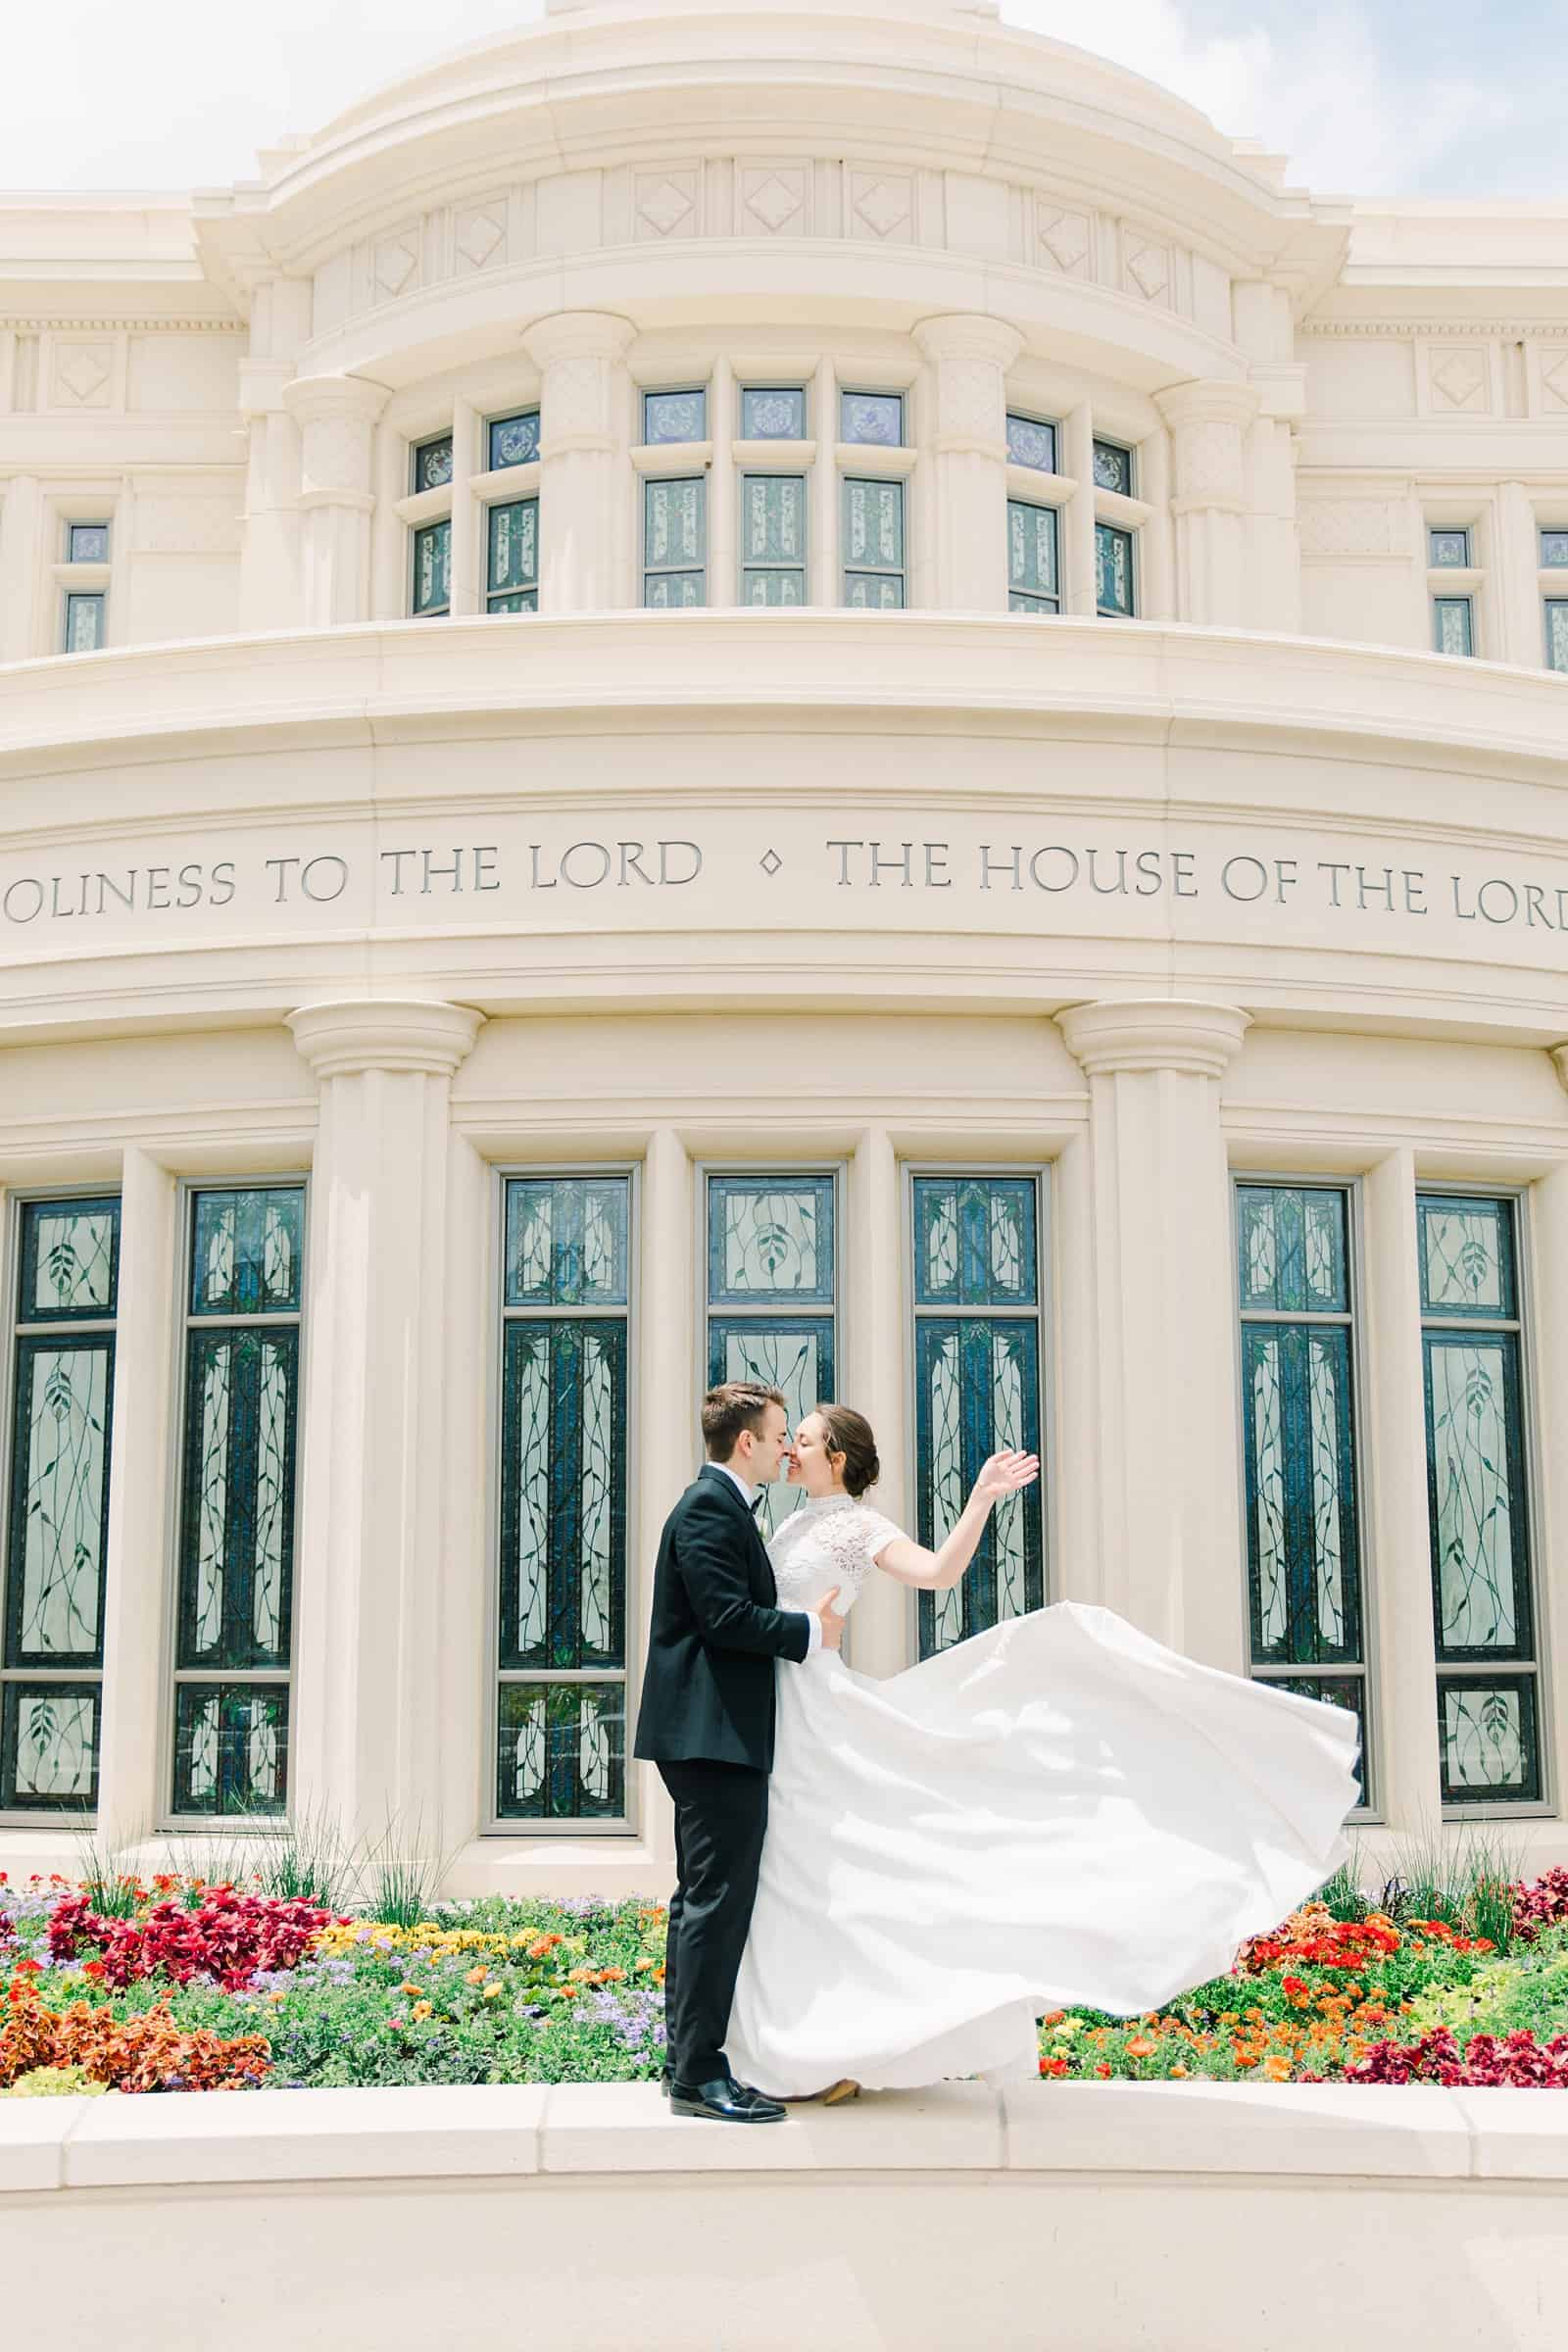 Payson Utah Temple wedding, bride and groom kiss near flower garden